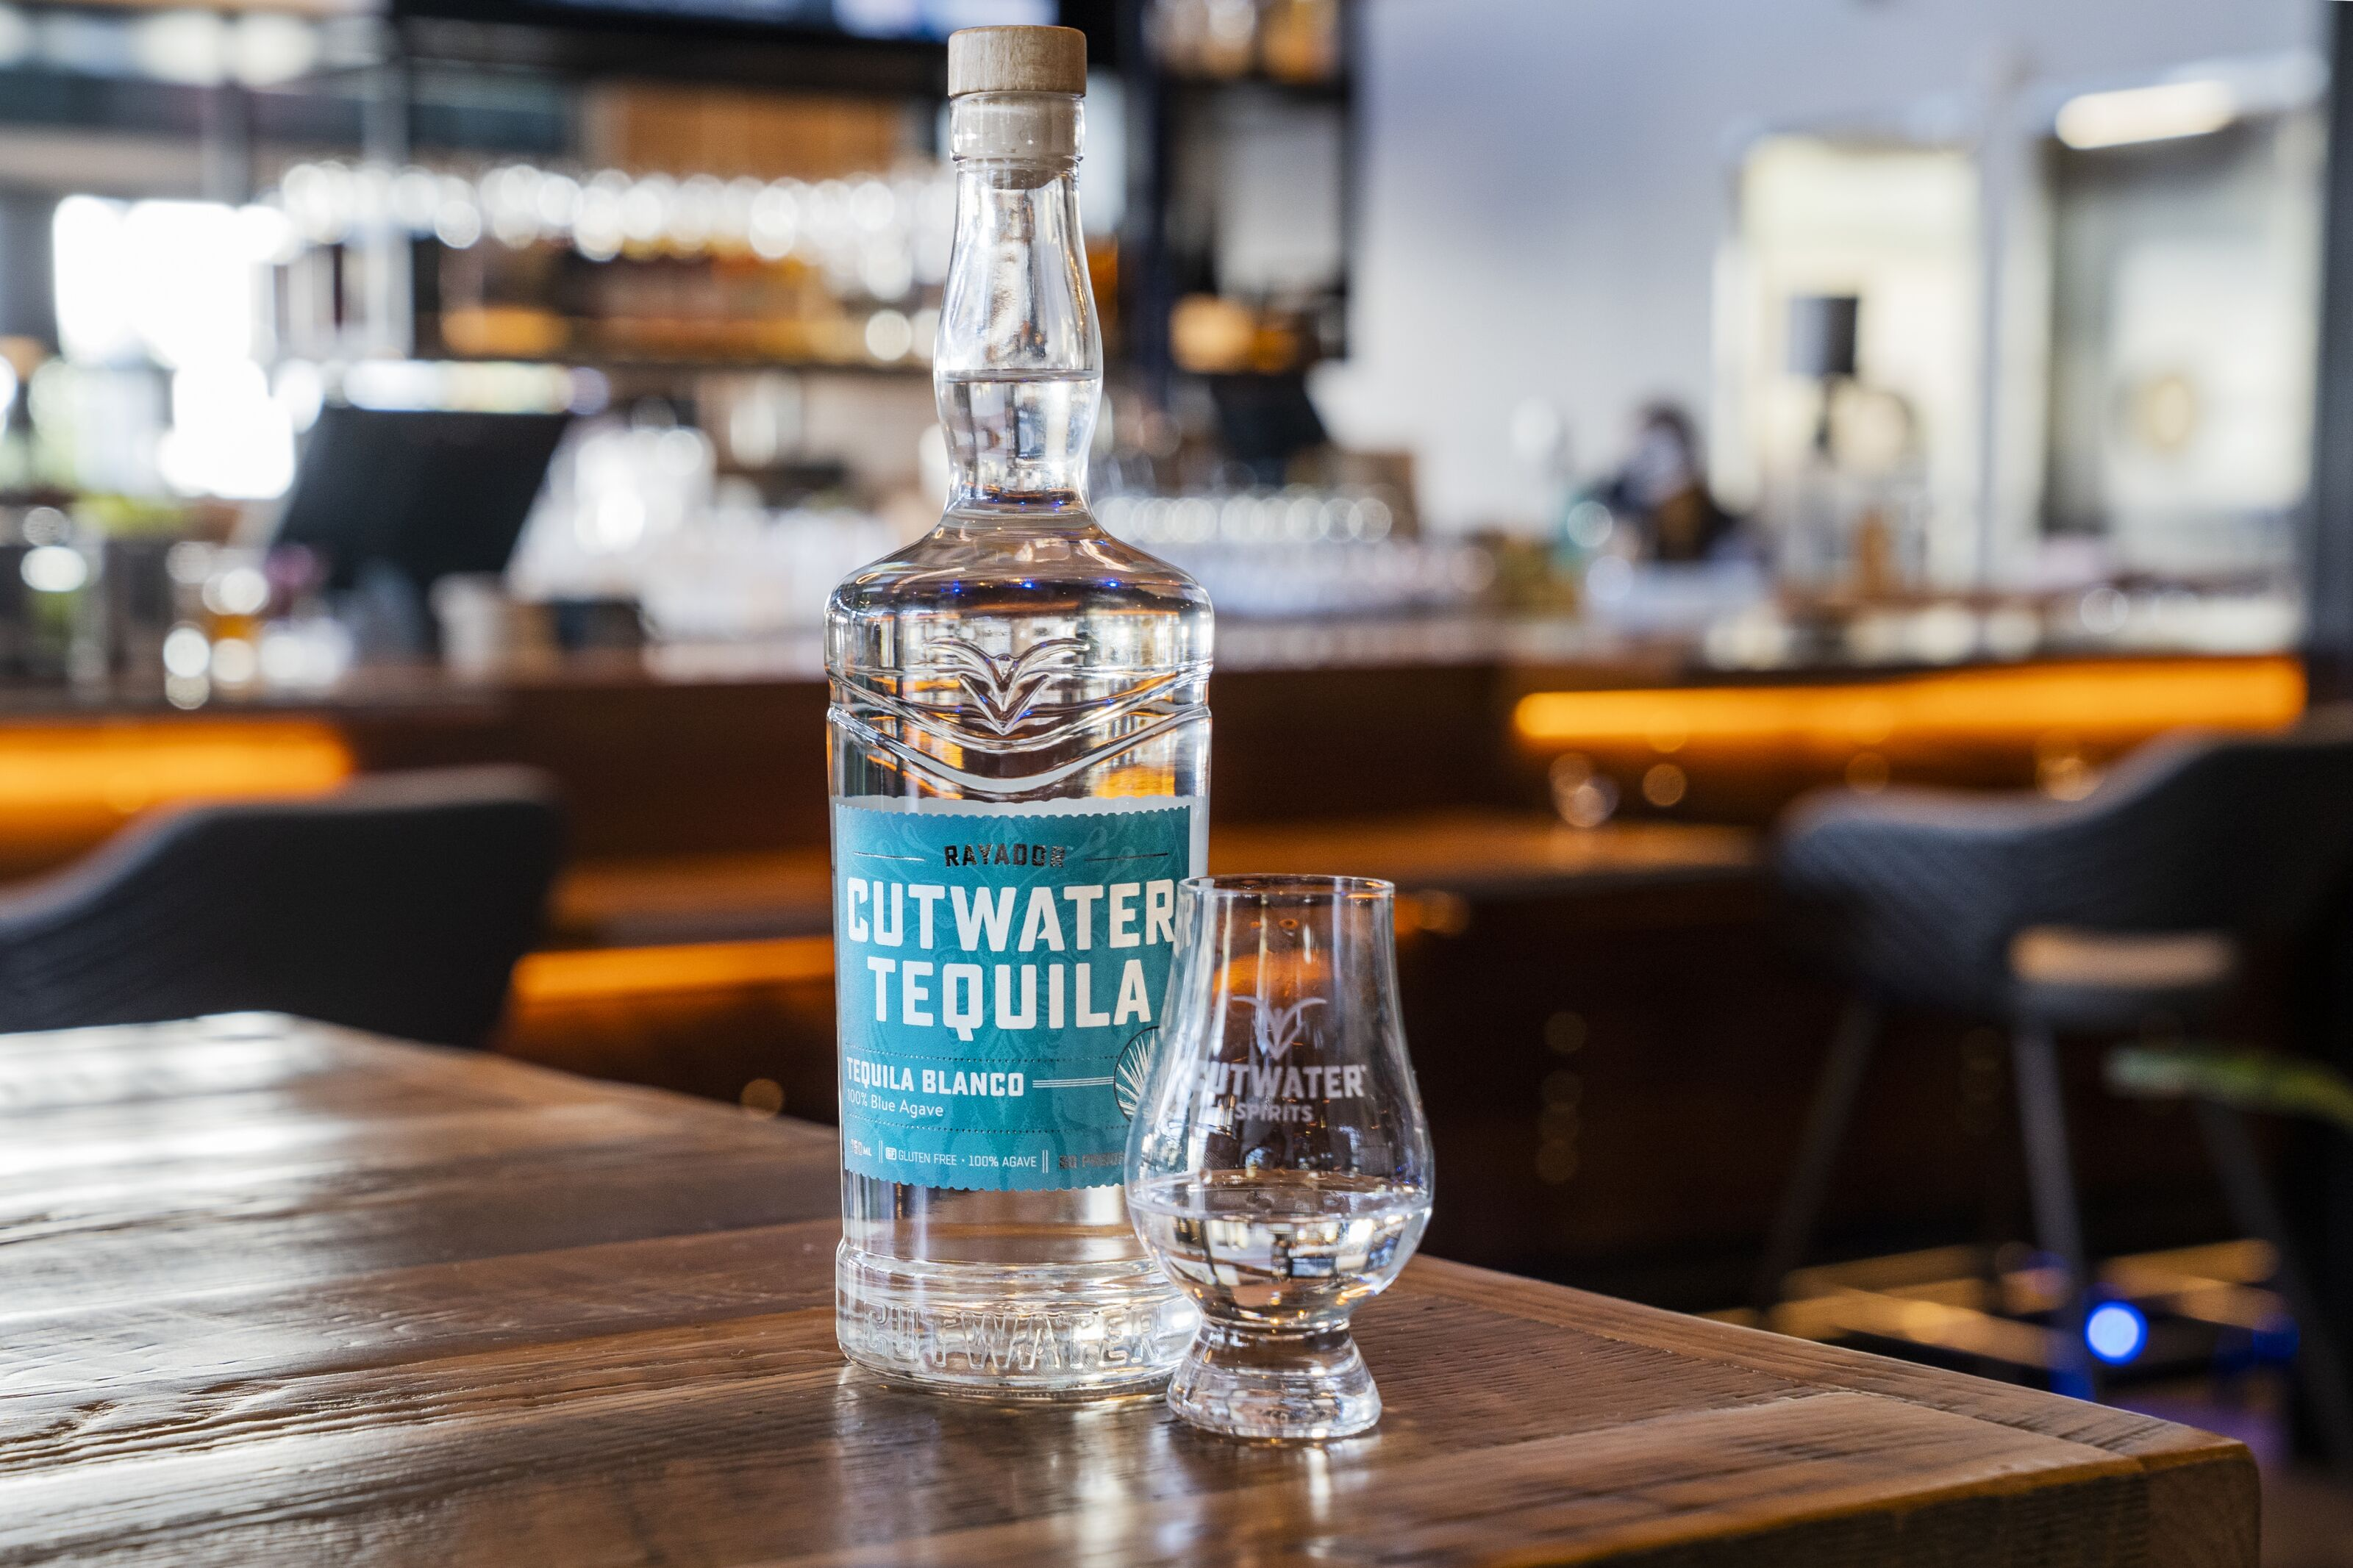 Cutwater Spirits is adding tequila to their line of products